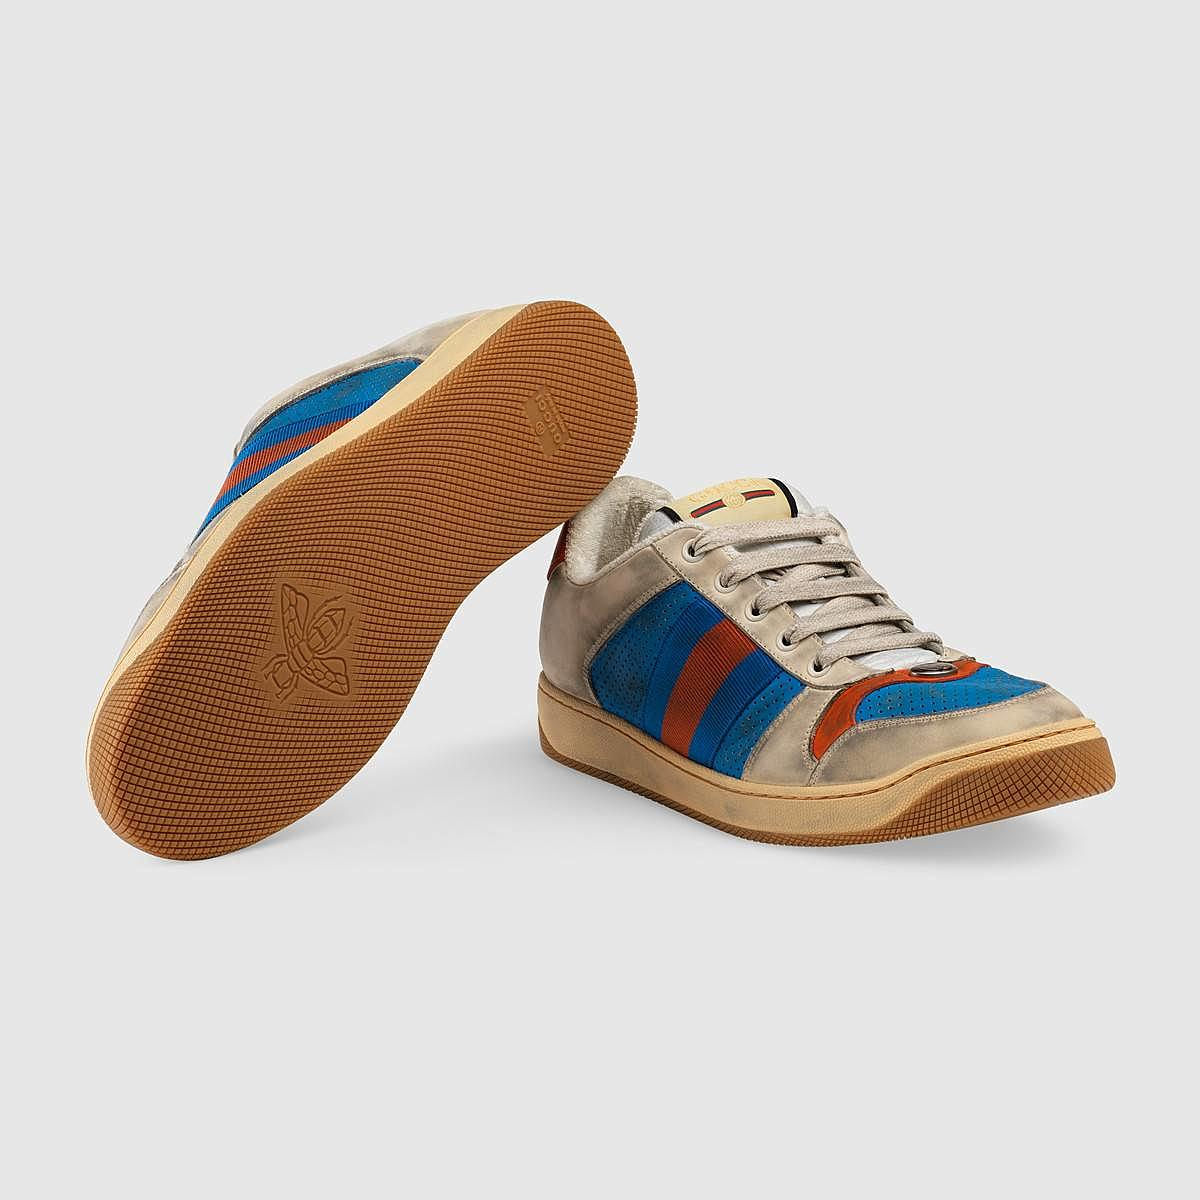 2311ade9074 Gucci Wants To Sell You Dirty Looking Sneakers For  870  Photo